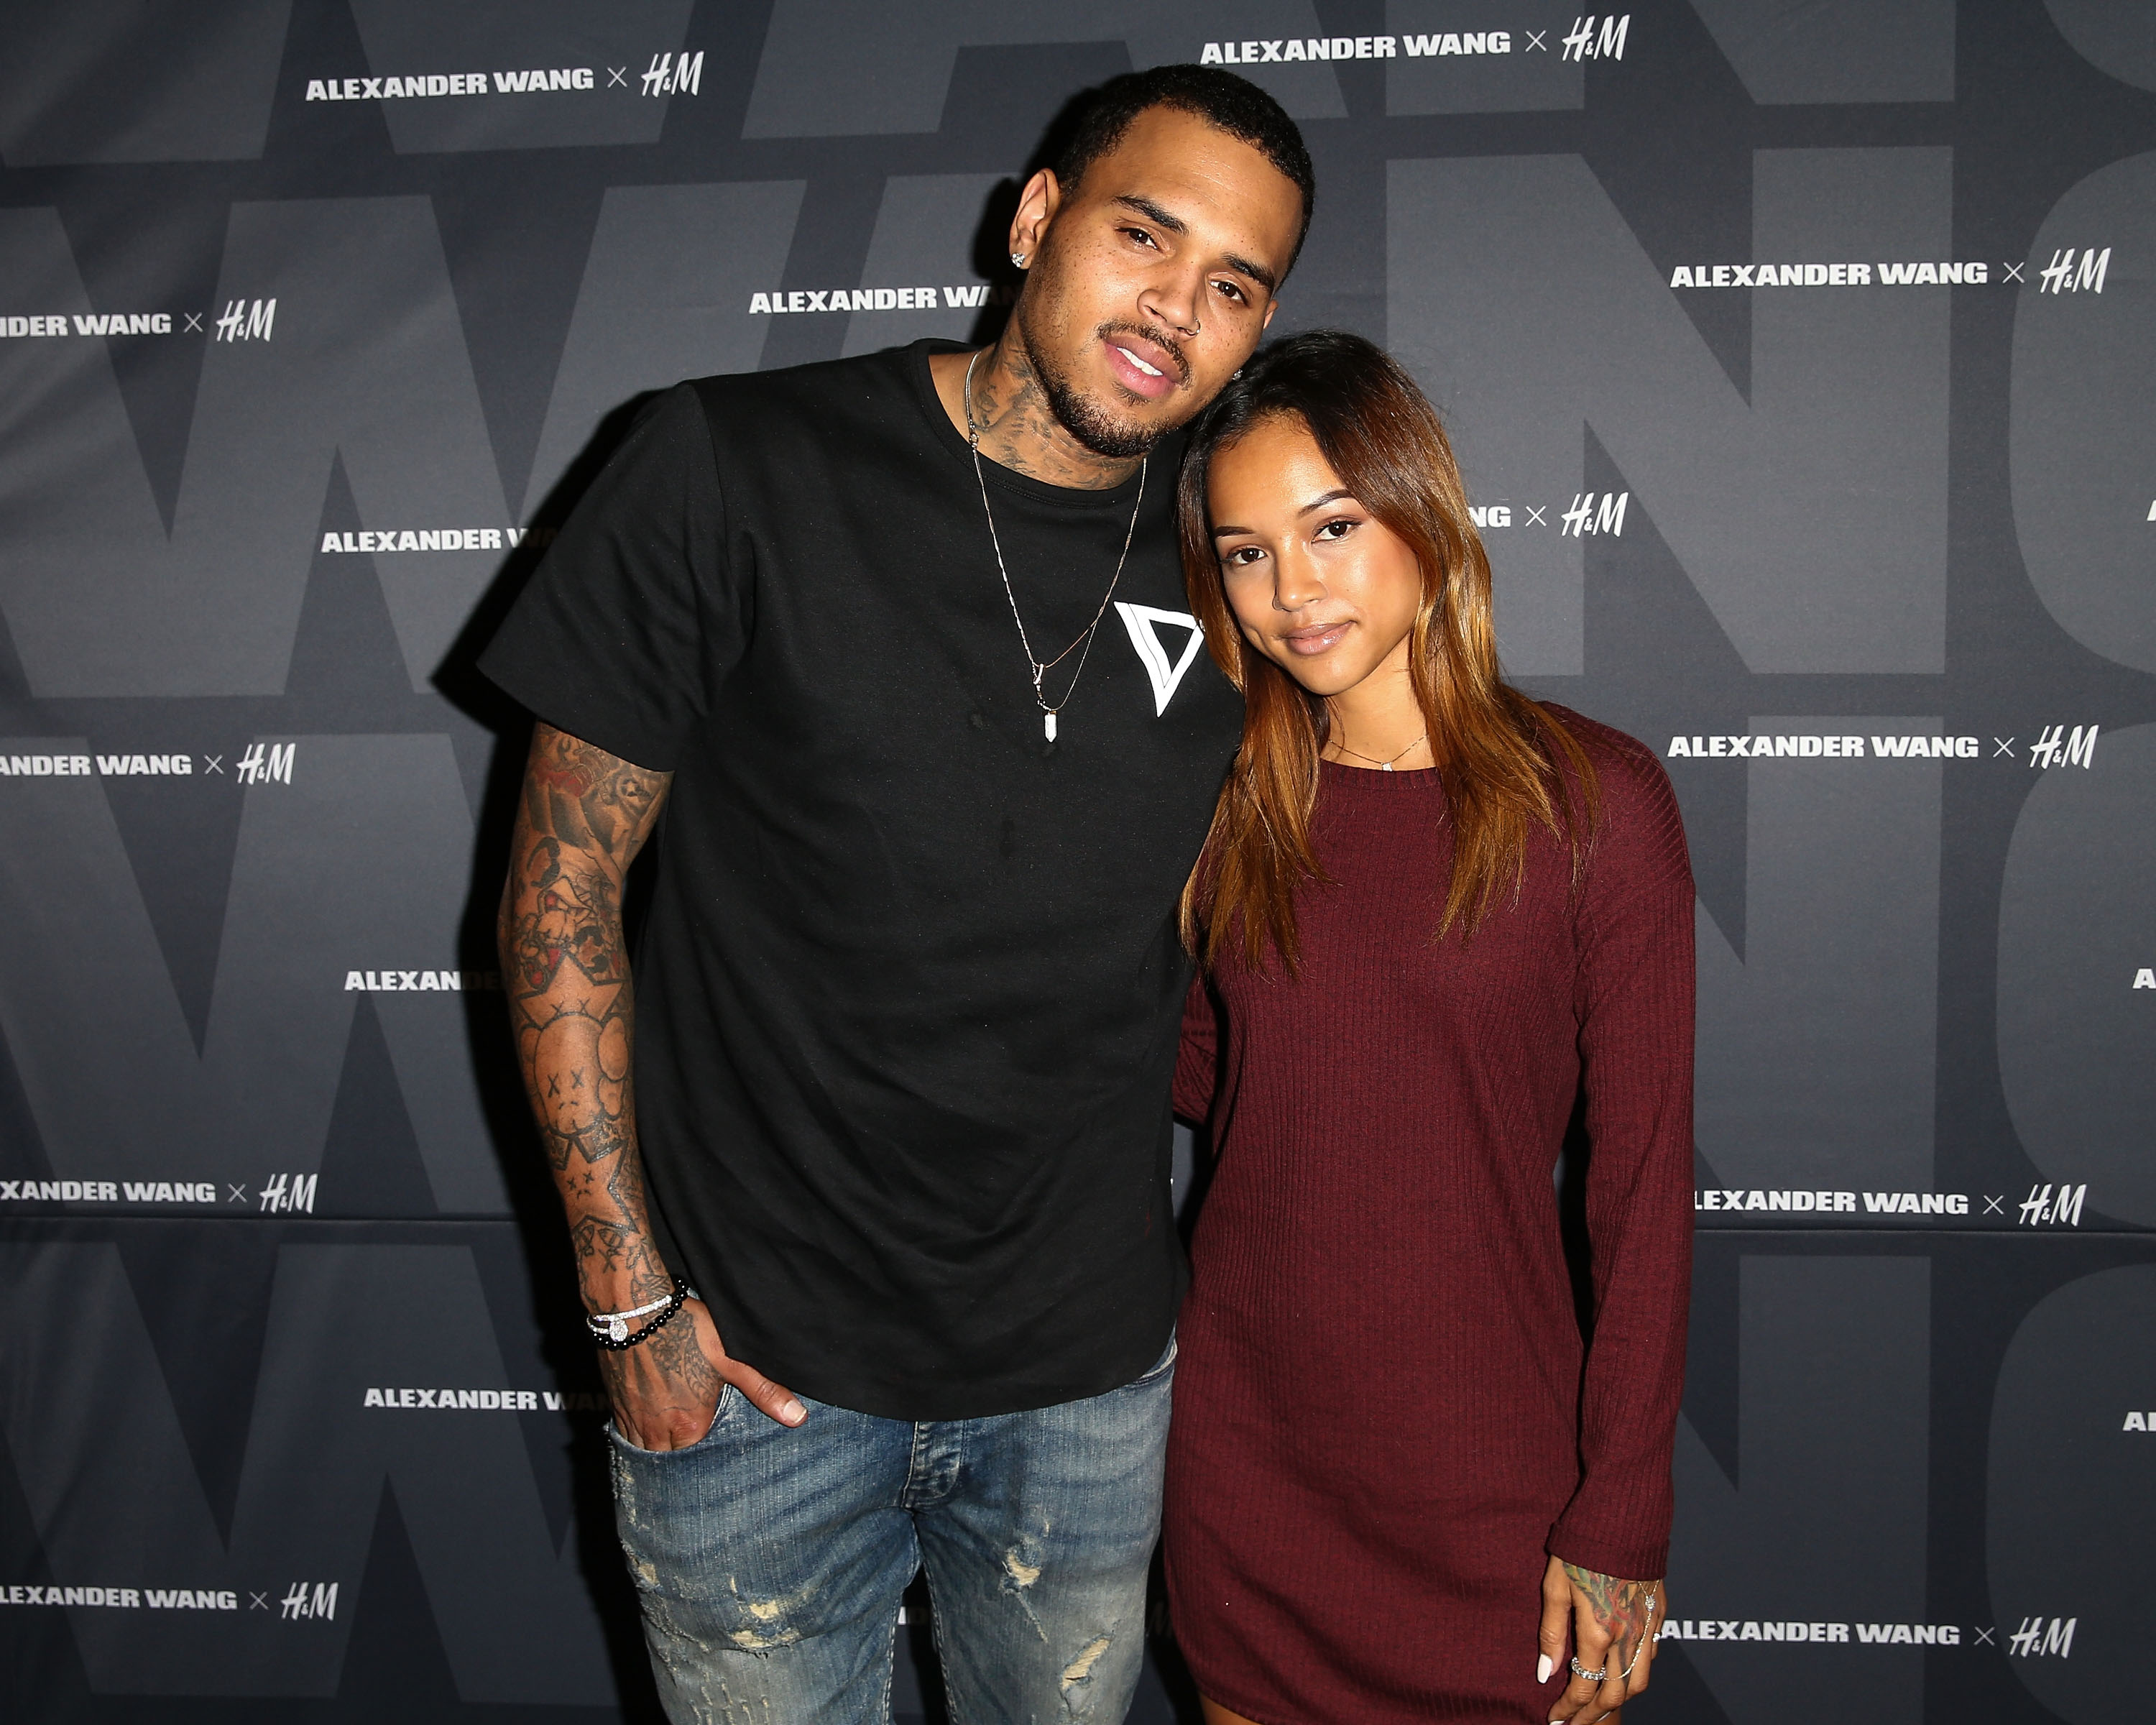 Chris Brown Threatened To Kill Karrueche Tran In Abusive Texts & More Accusations